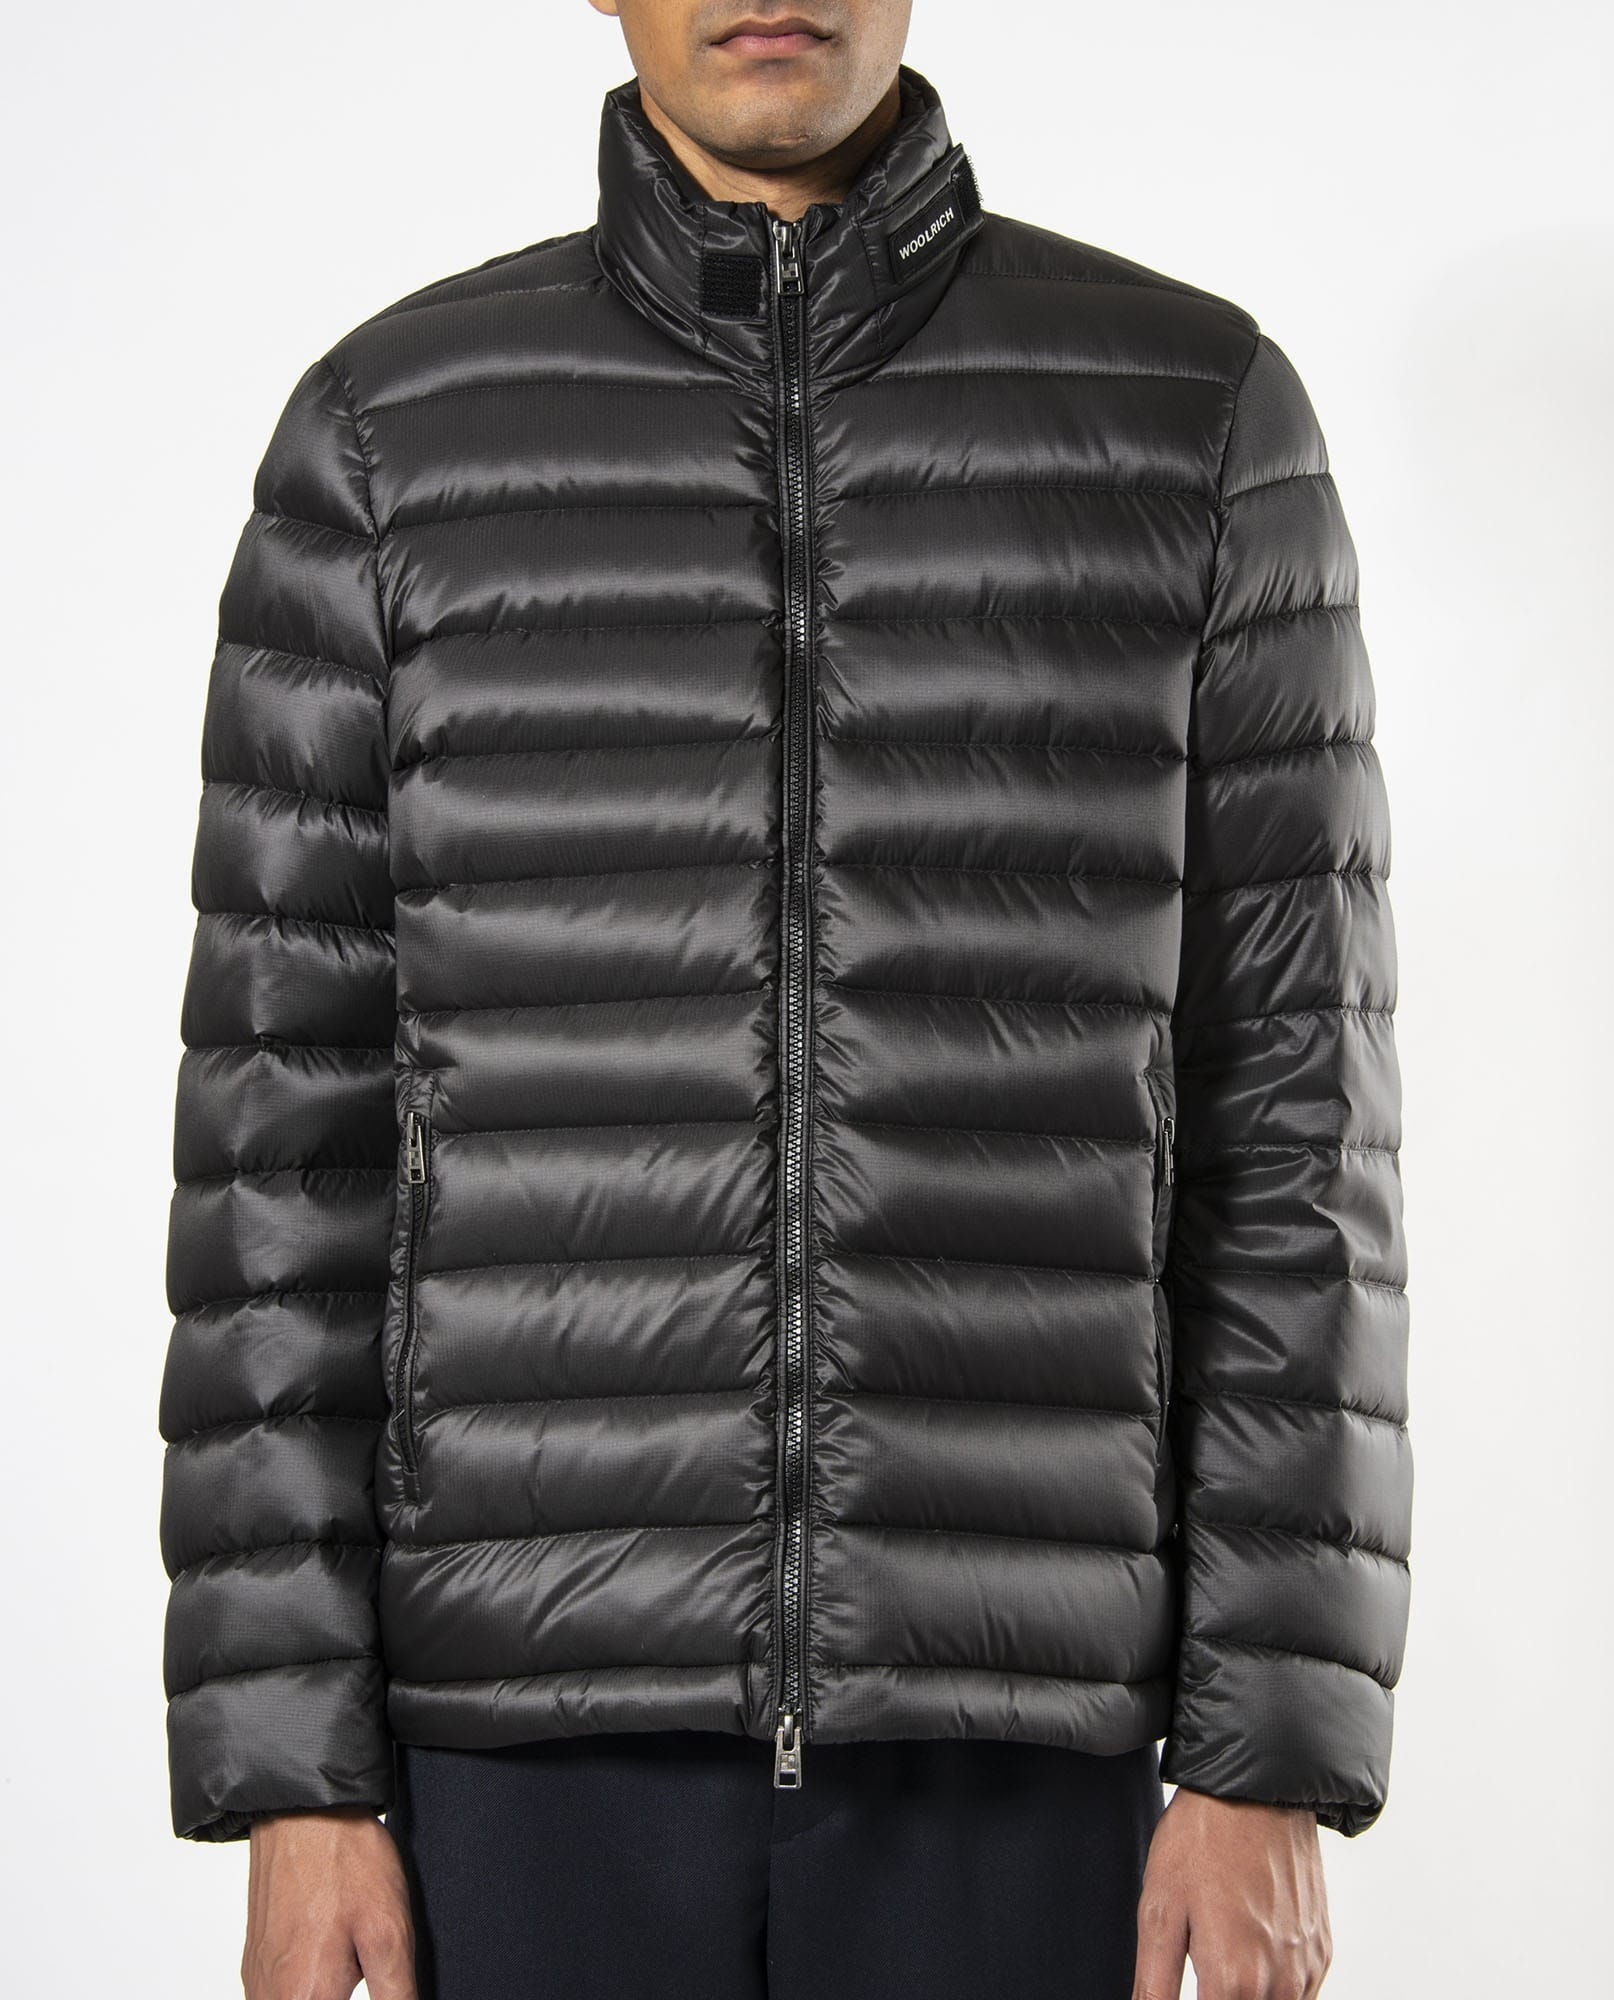 ECO BERING JACKET